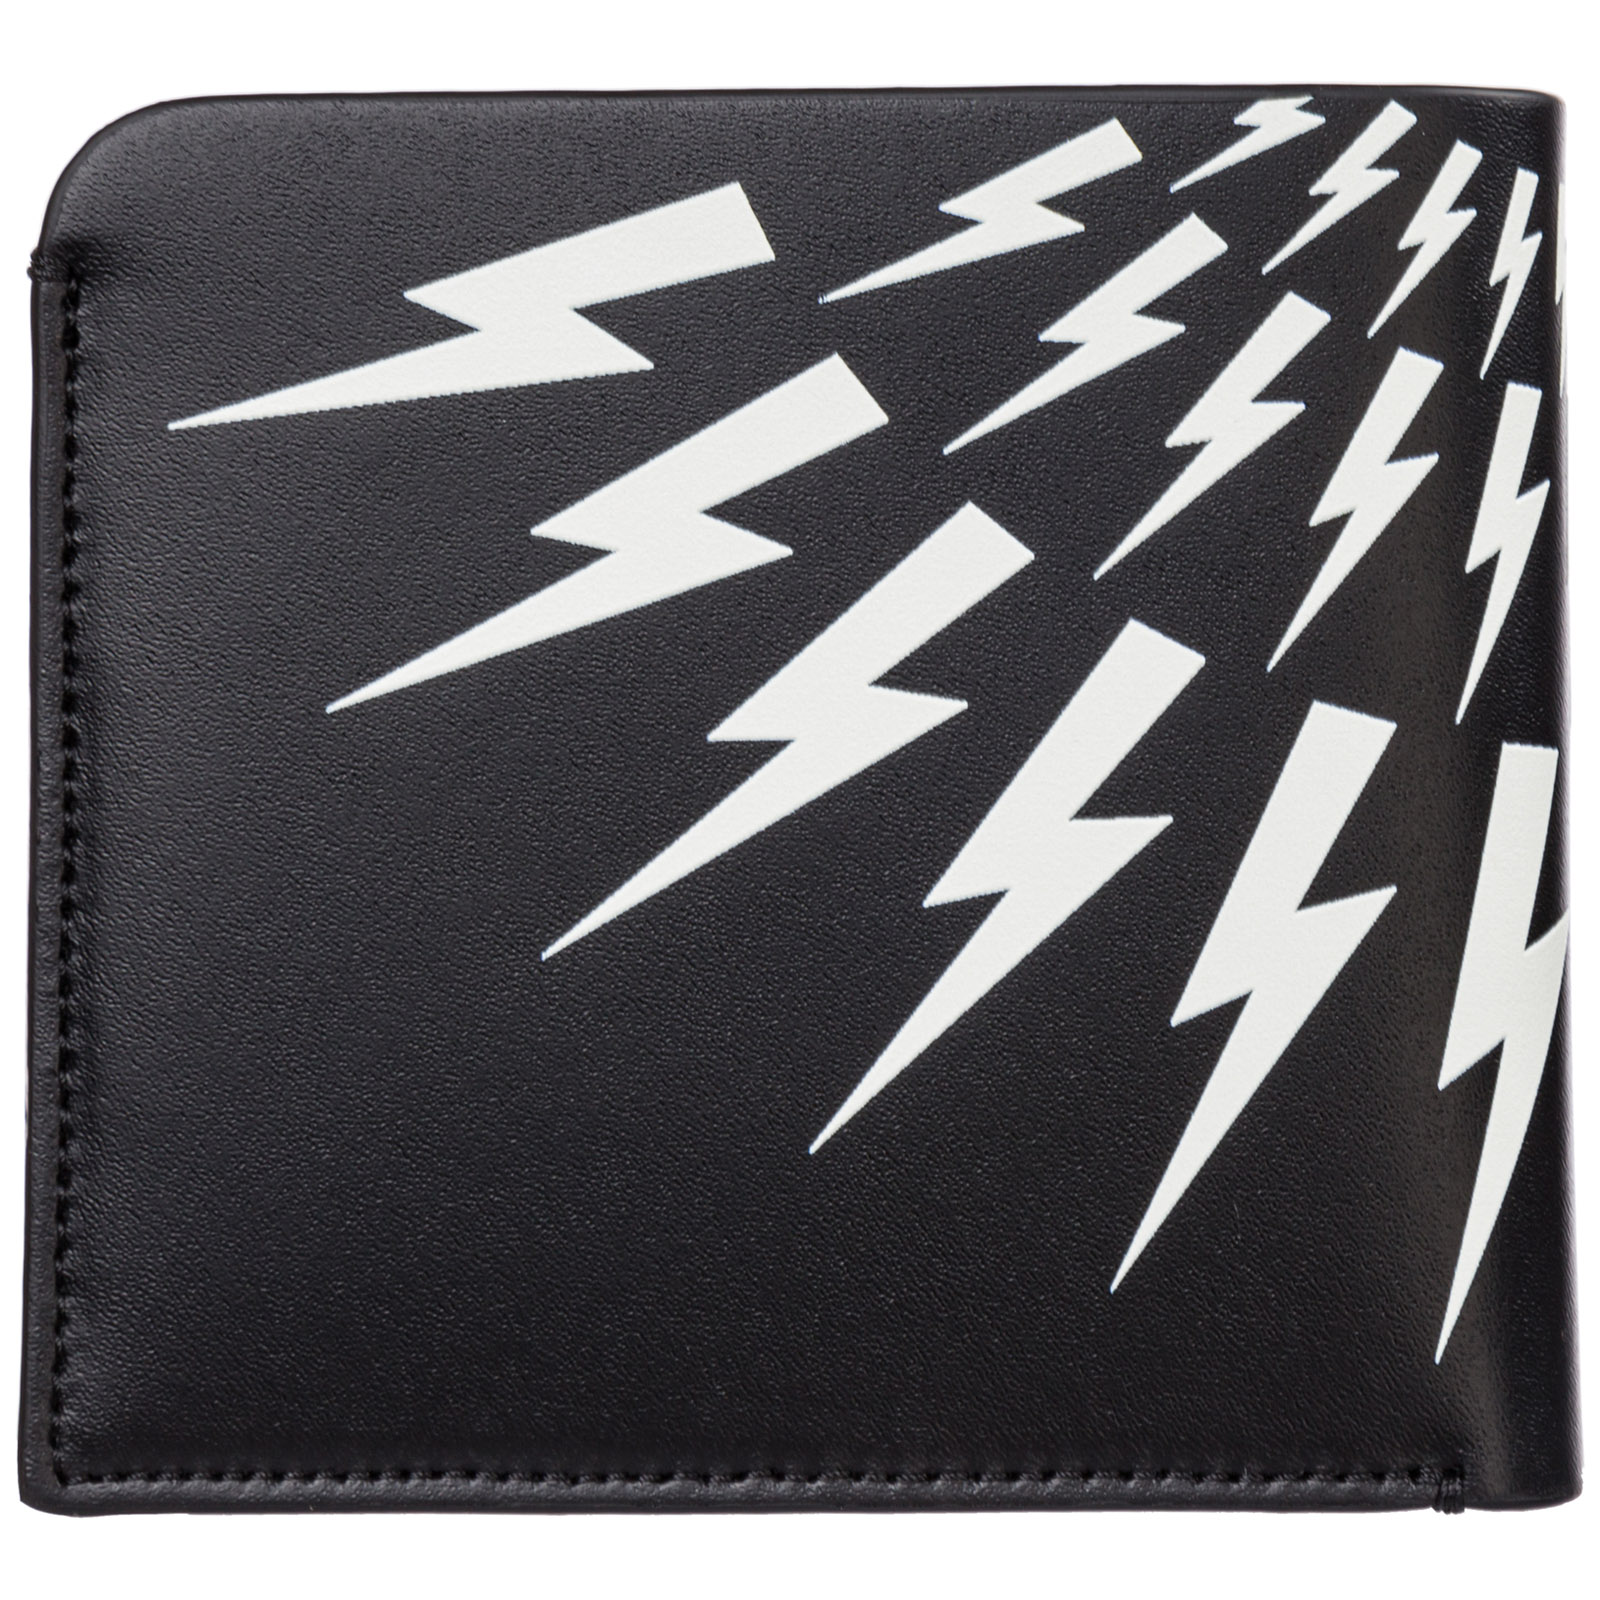 Men's genuine leather wallet credit card bifold bifold  thunderbolt fair-isle